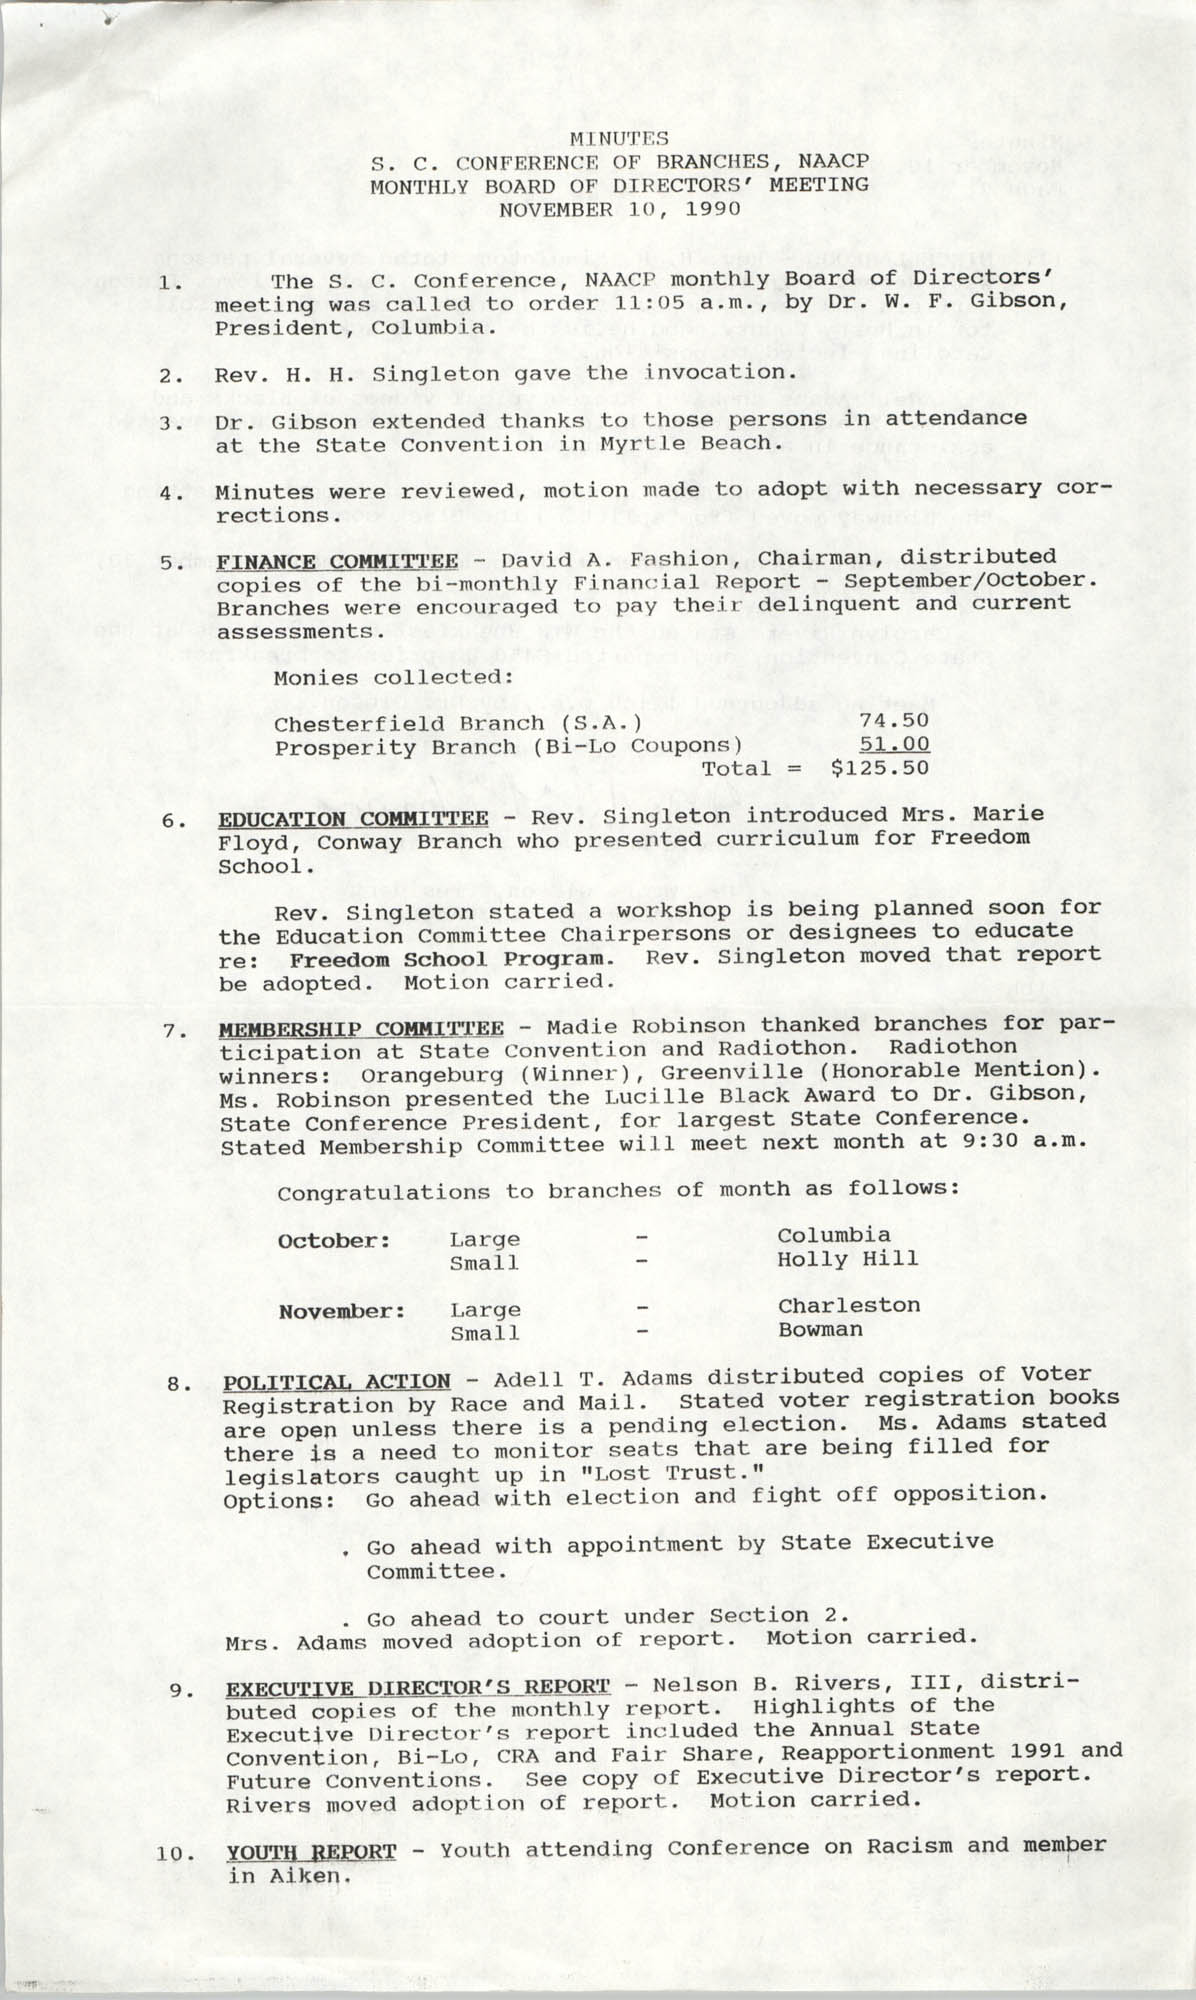 Minutes, South Carolina Conference of Branches of the NAACP, November 10, 1990